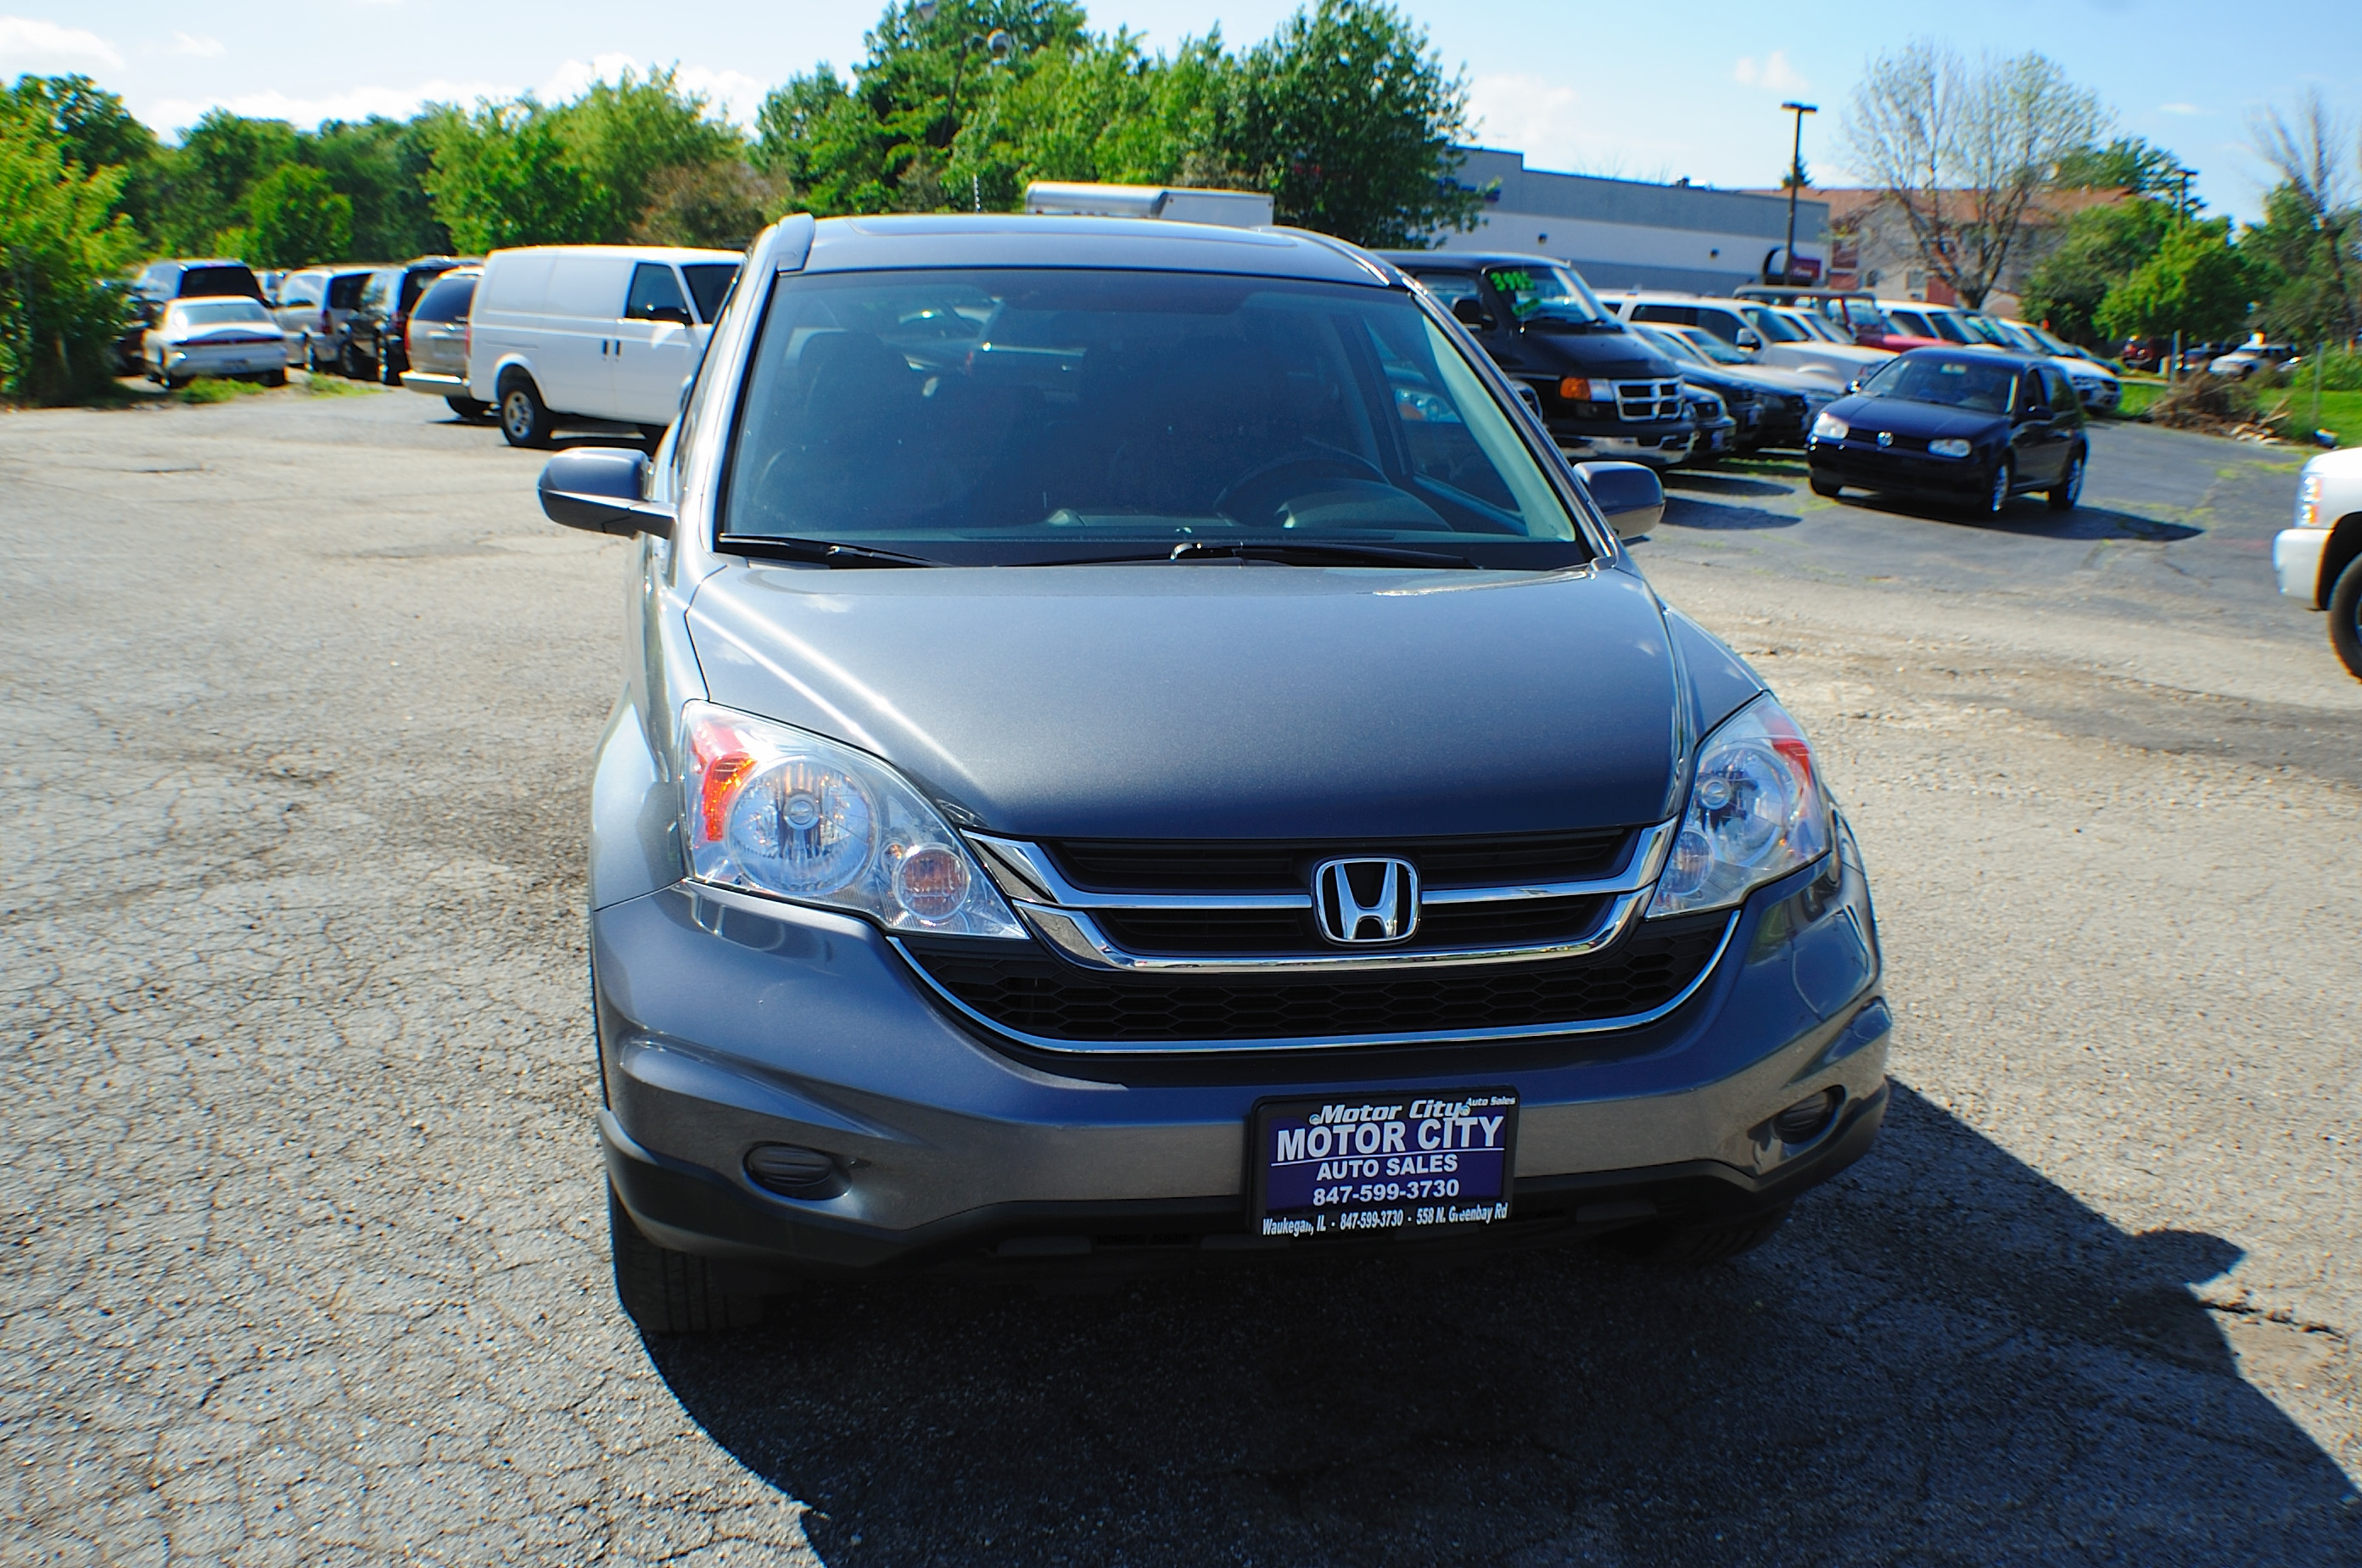 2010 Honda CRV Gray Metallic 4x4 SUV Navigation Used Car Sale Libertyville Beach Park